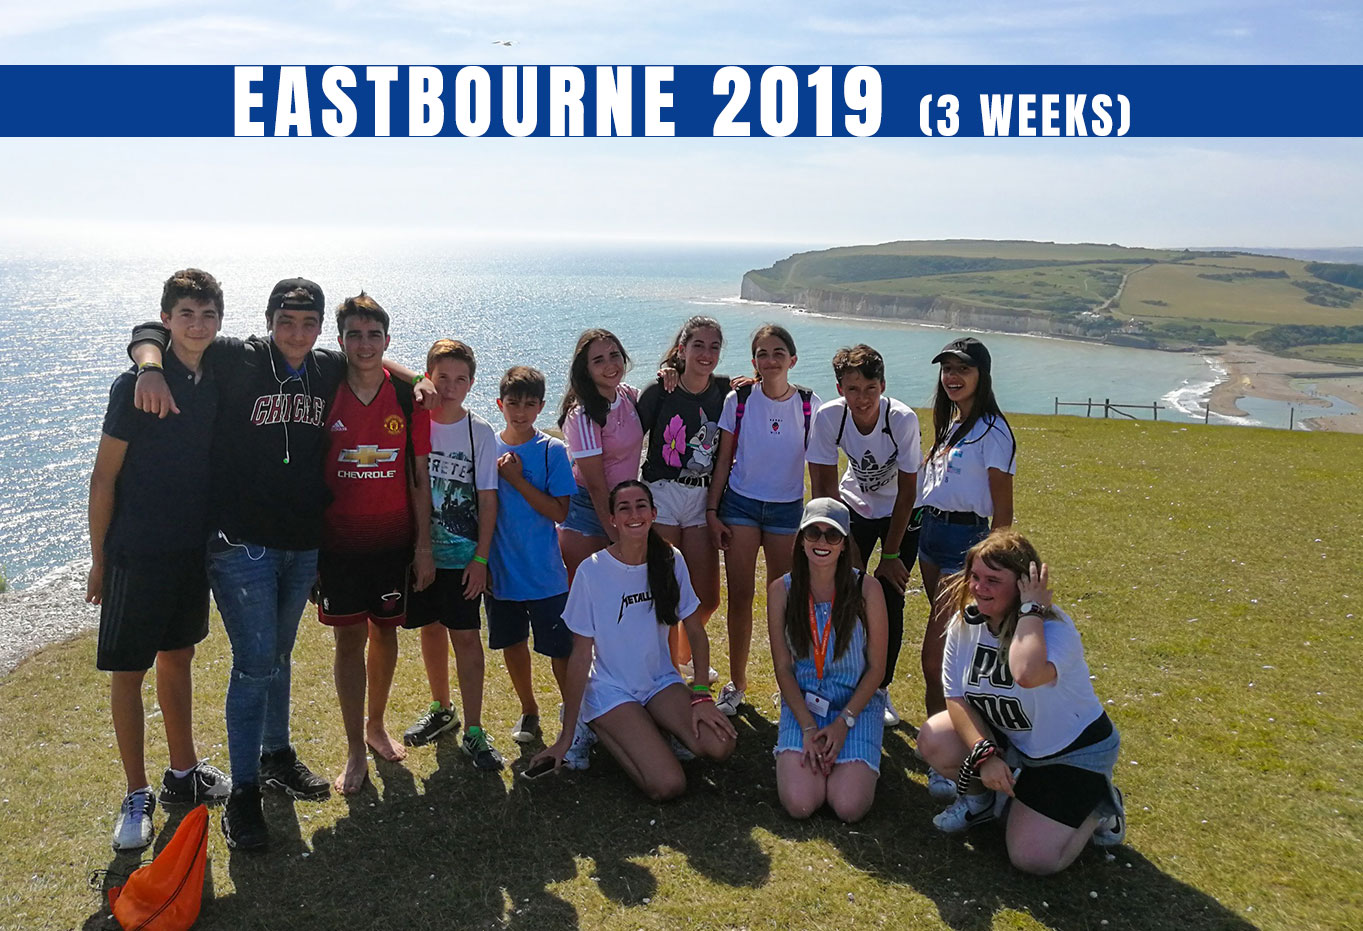 Program Review: EASTBOURNE 2019 (3 weeks)